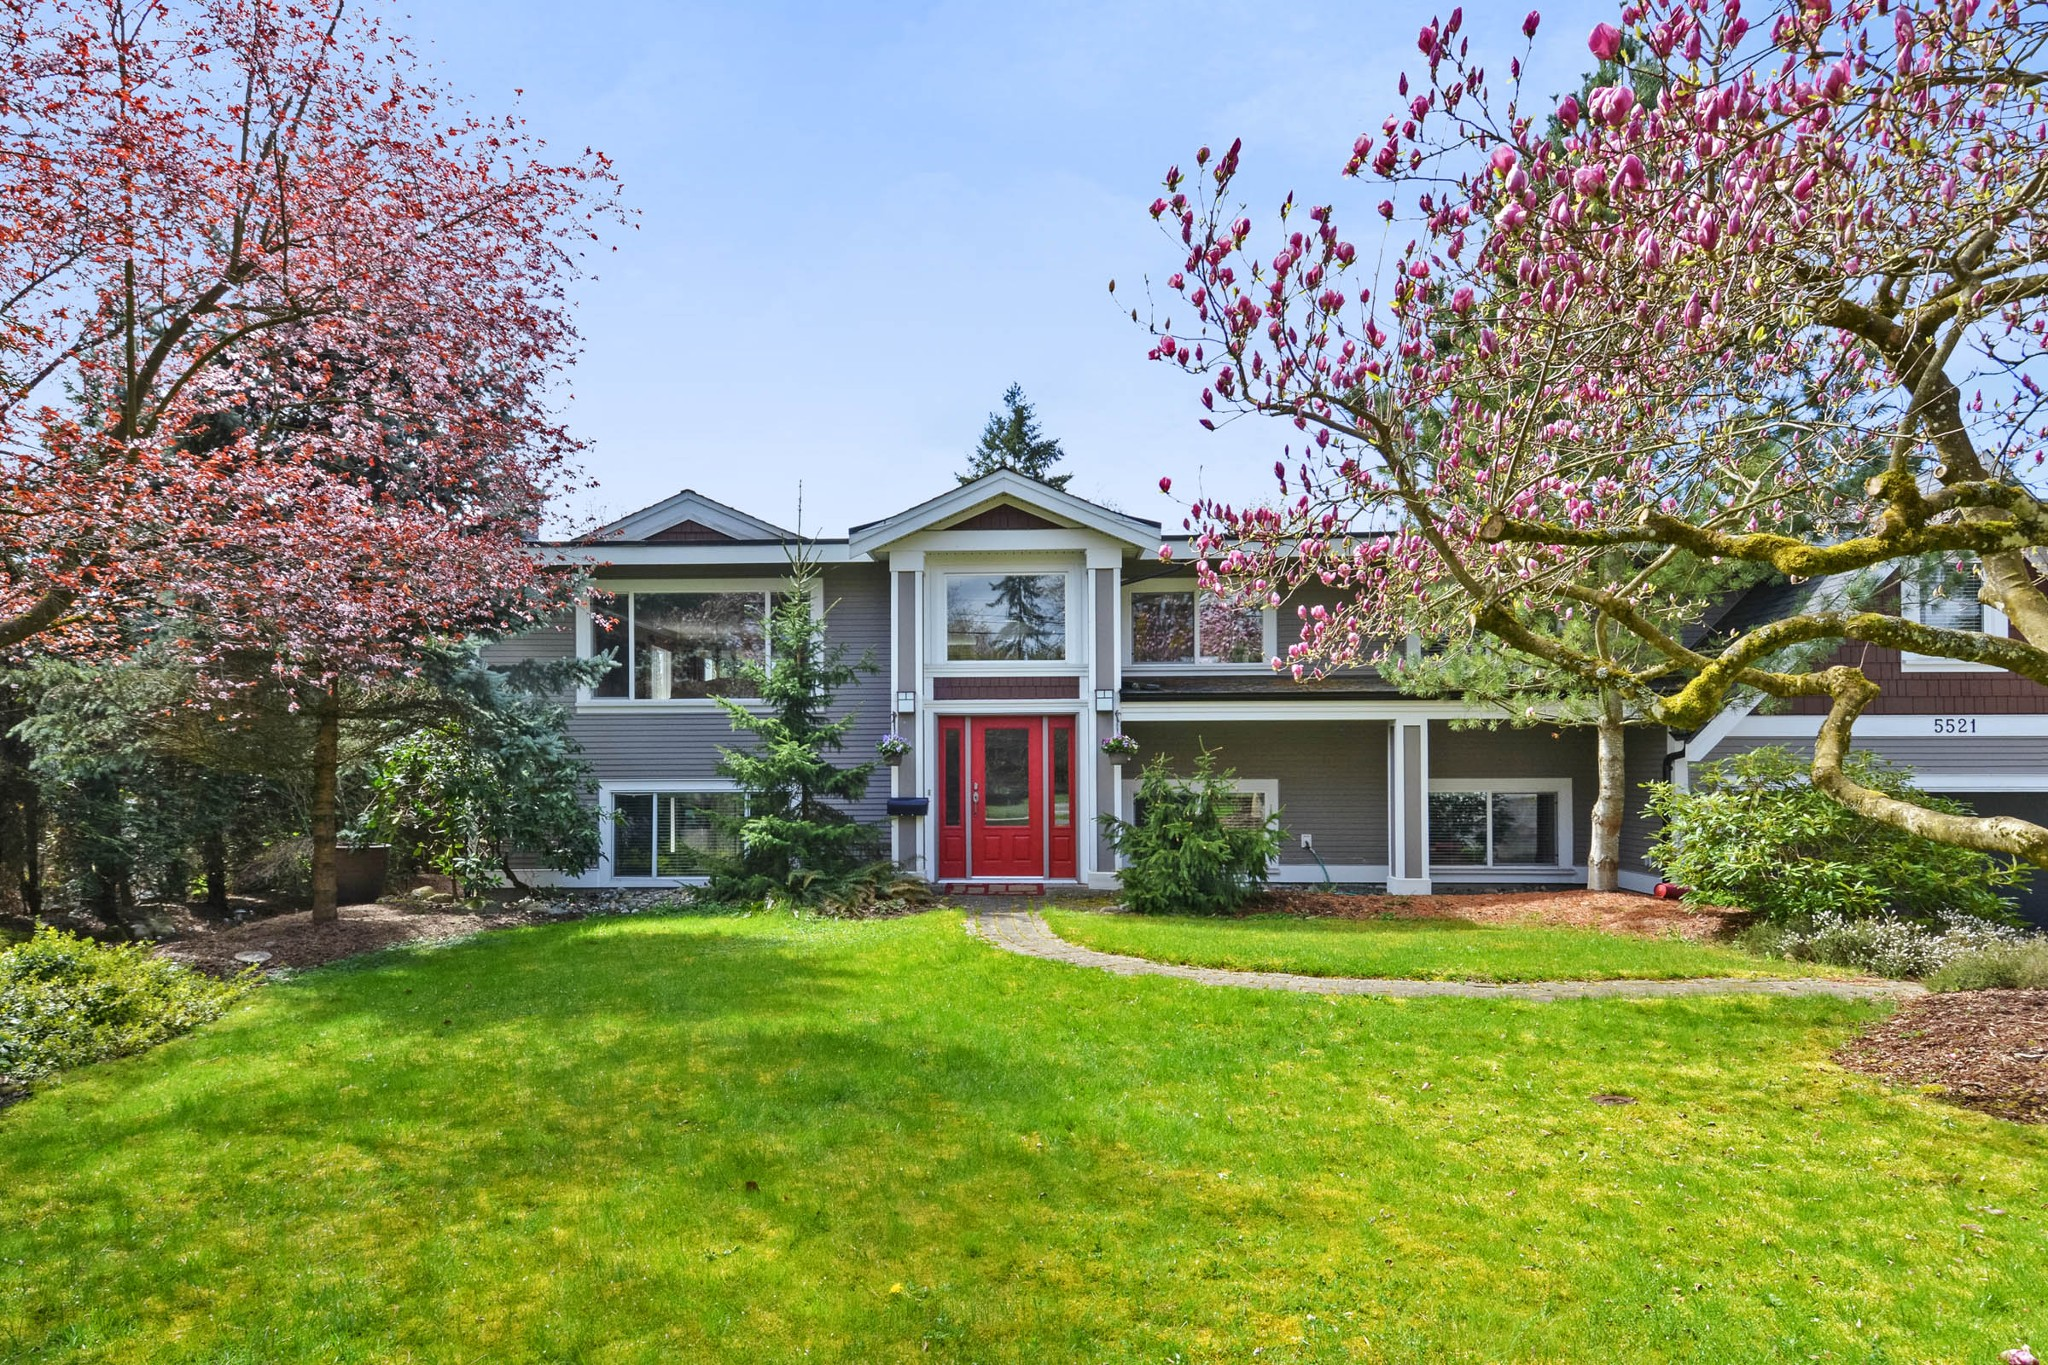 Main Photo: 5521 BAKERVIEW Drive in Surrey: Sullivan Station House for sale : MLS®# R2257162